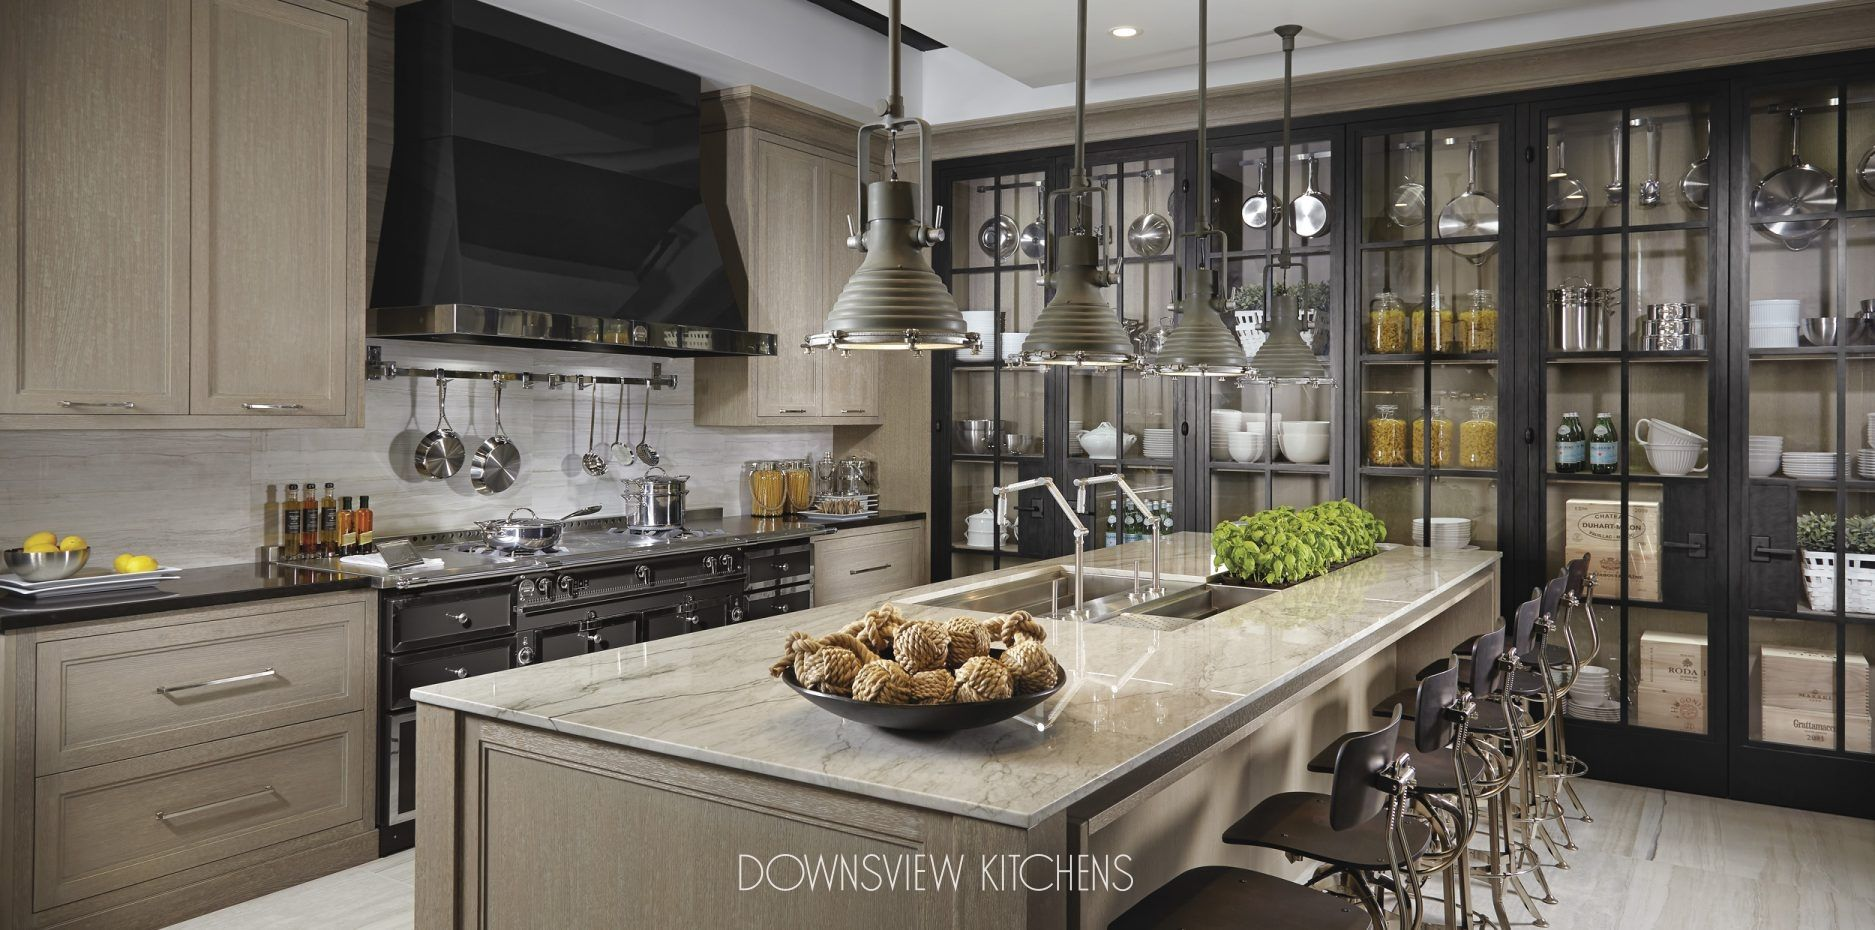 Industrial Chic Downsview Kitchens And Fine Custom Cabinetry Manufacturers Of Custom Kitchen Ca Kitchen Design Custom Kitchen Cabinets Kitchen Inspirations